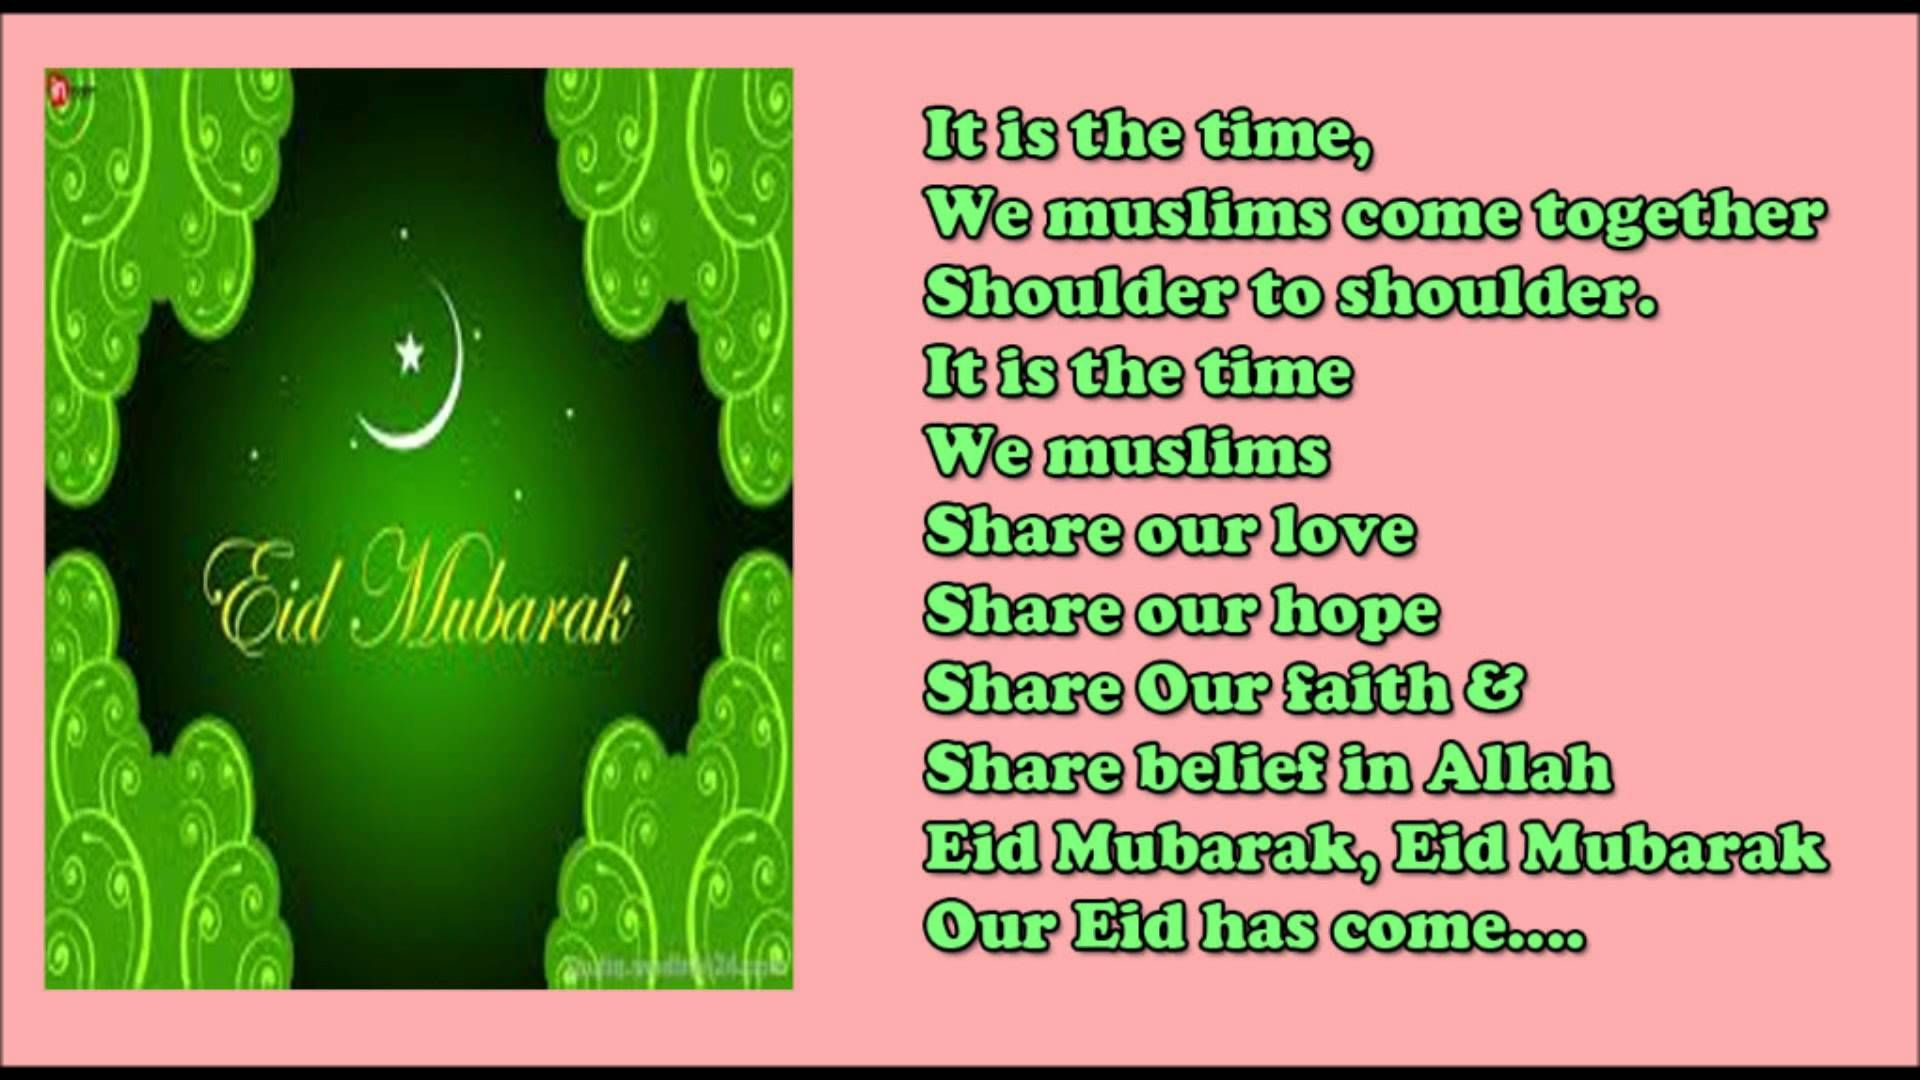 Eid Mubarak Poem For Kids Short And Sweet Poem On Eid Youtube